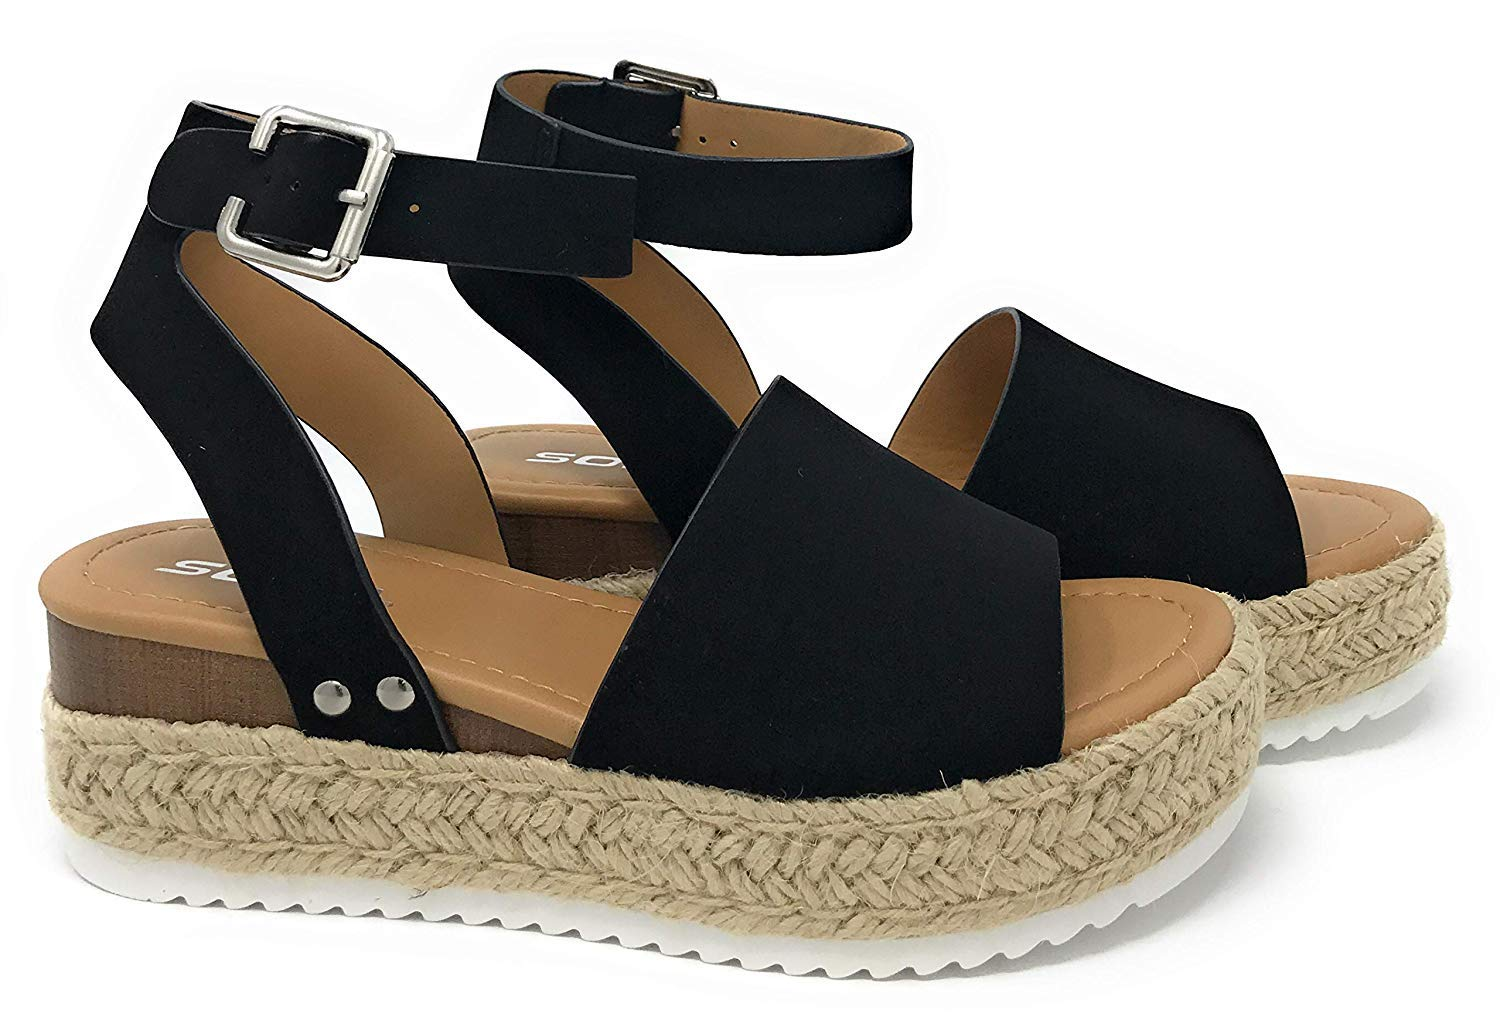 SODA Topic Black Casual Espadrilles Trim Rubber Sole Flatform Studded Wedge Buckle Ankle Strap Open Toe Sandals (8)